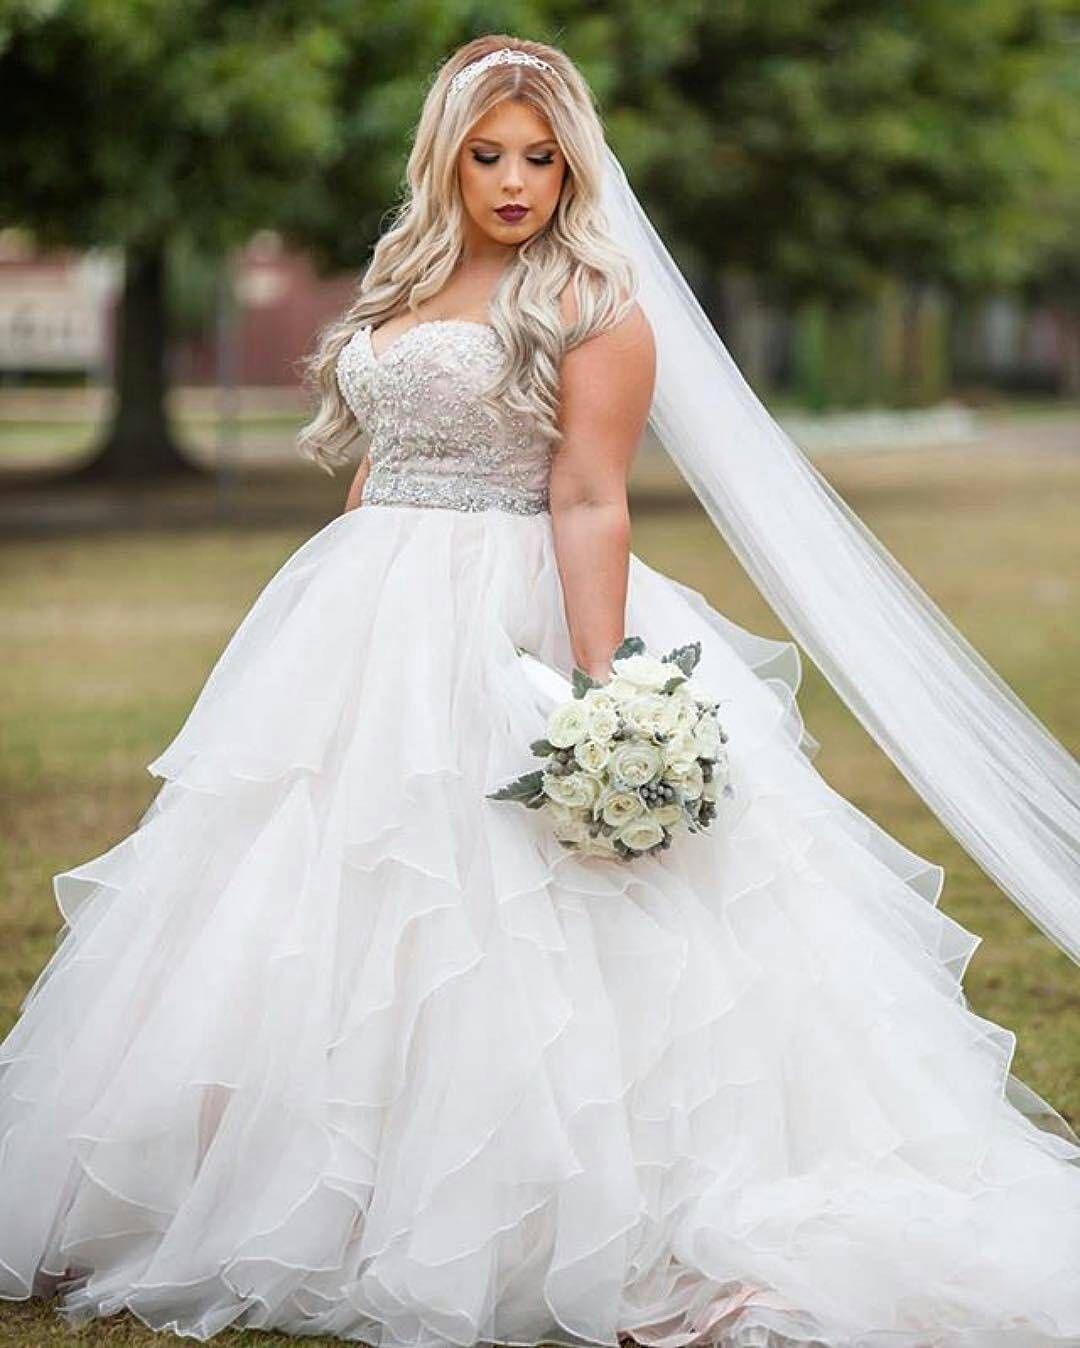 ccc8177a147 ... can be easily recreated for  brides with any design changes. We are   USA dress  designers who specialize in affordable custom plus size   weddingdresses.